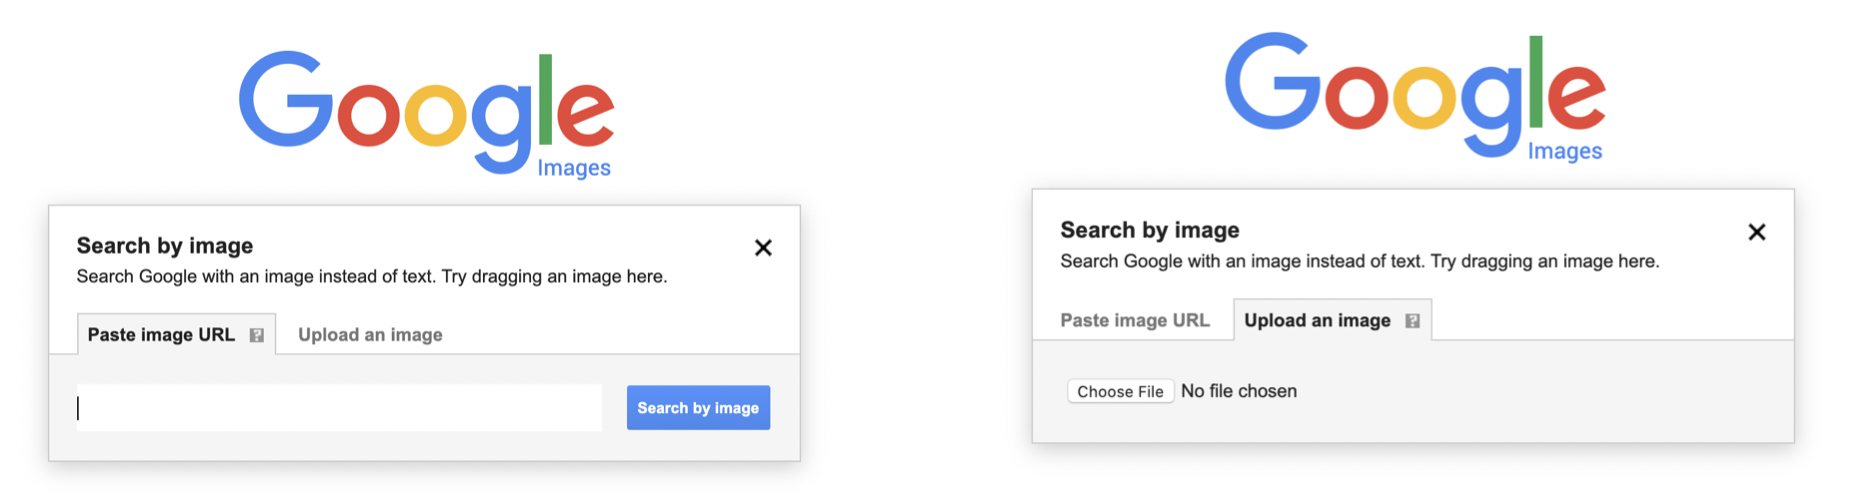 Google Image Search Options